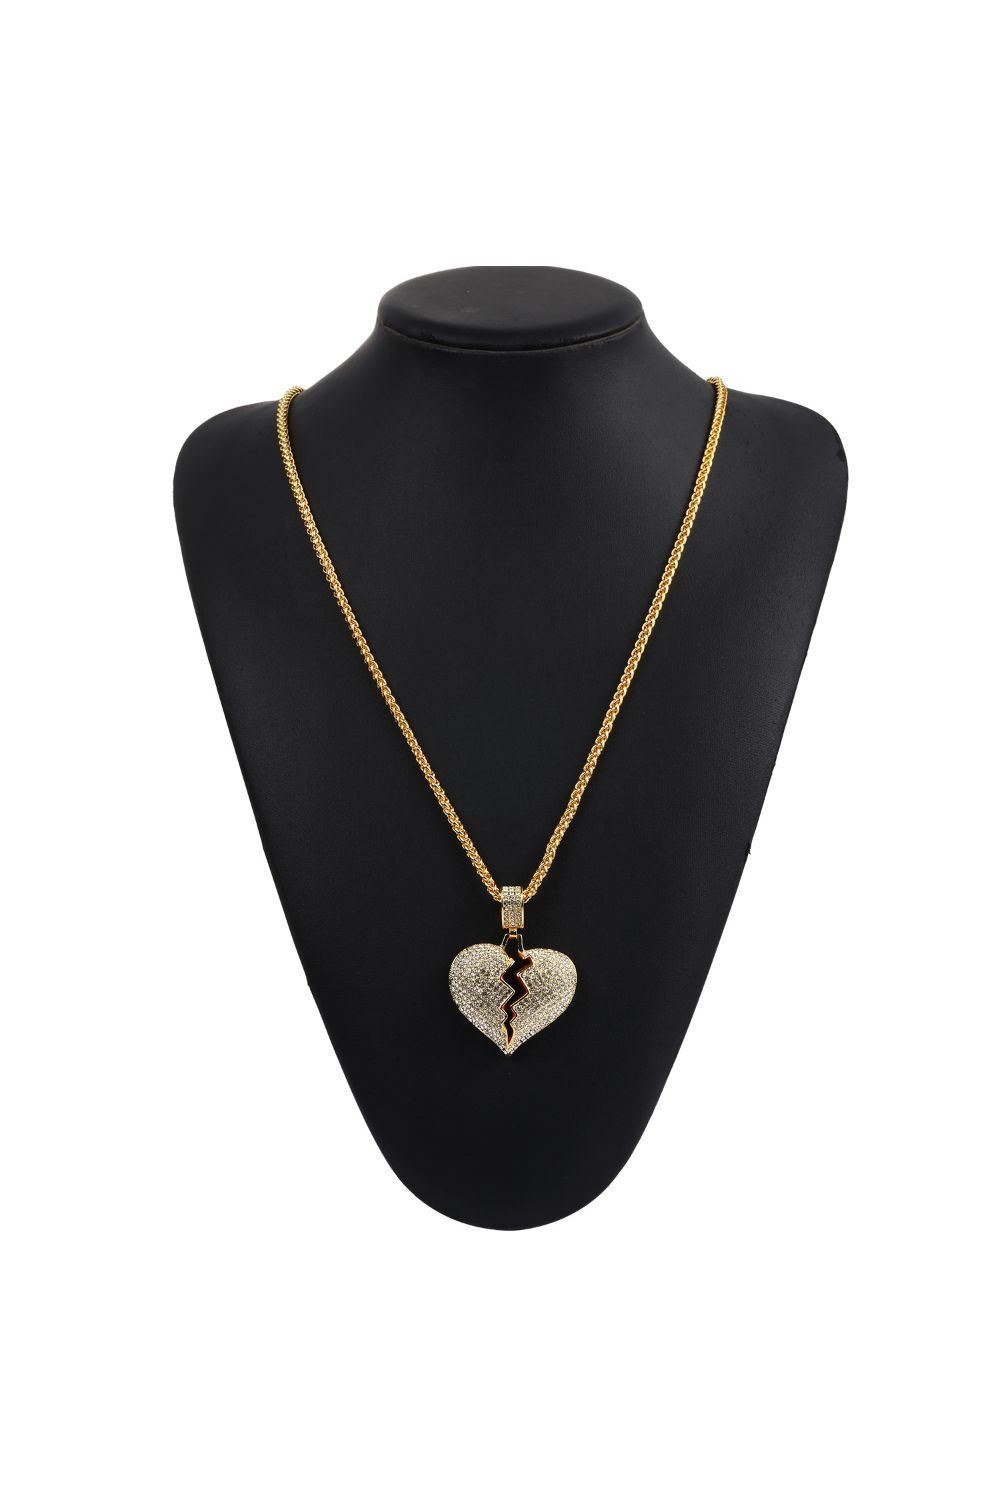 Iced Out Broken Heart Necklace in 18K Gold Filled with Chain